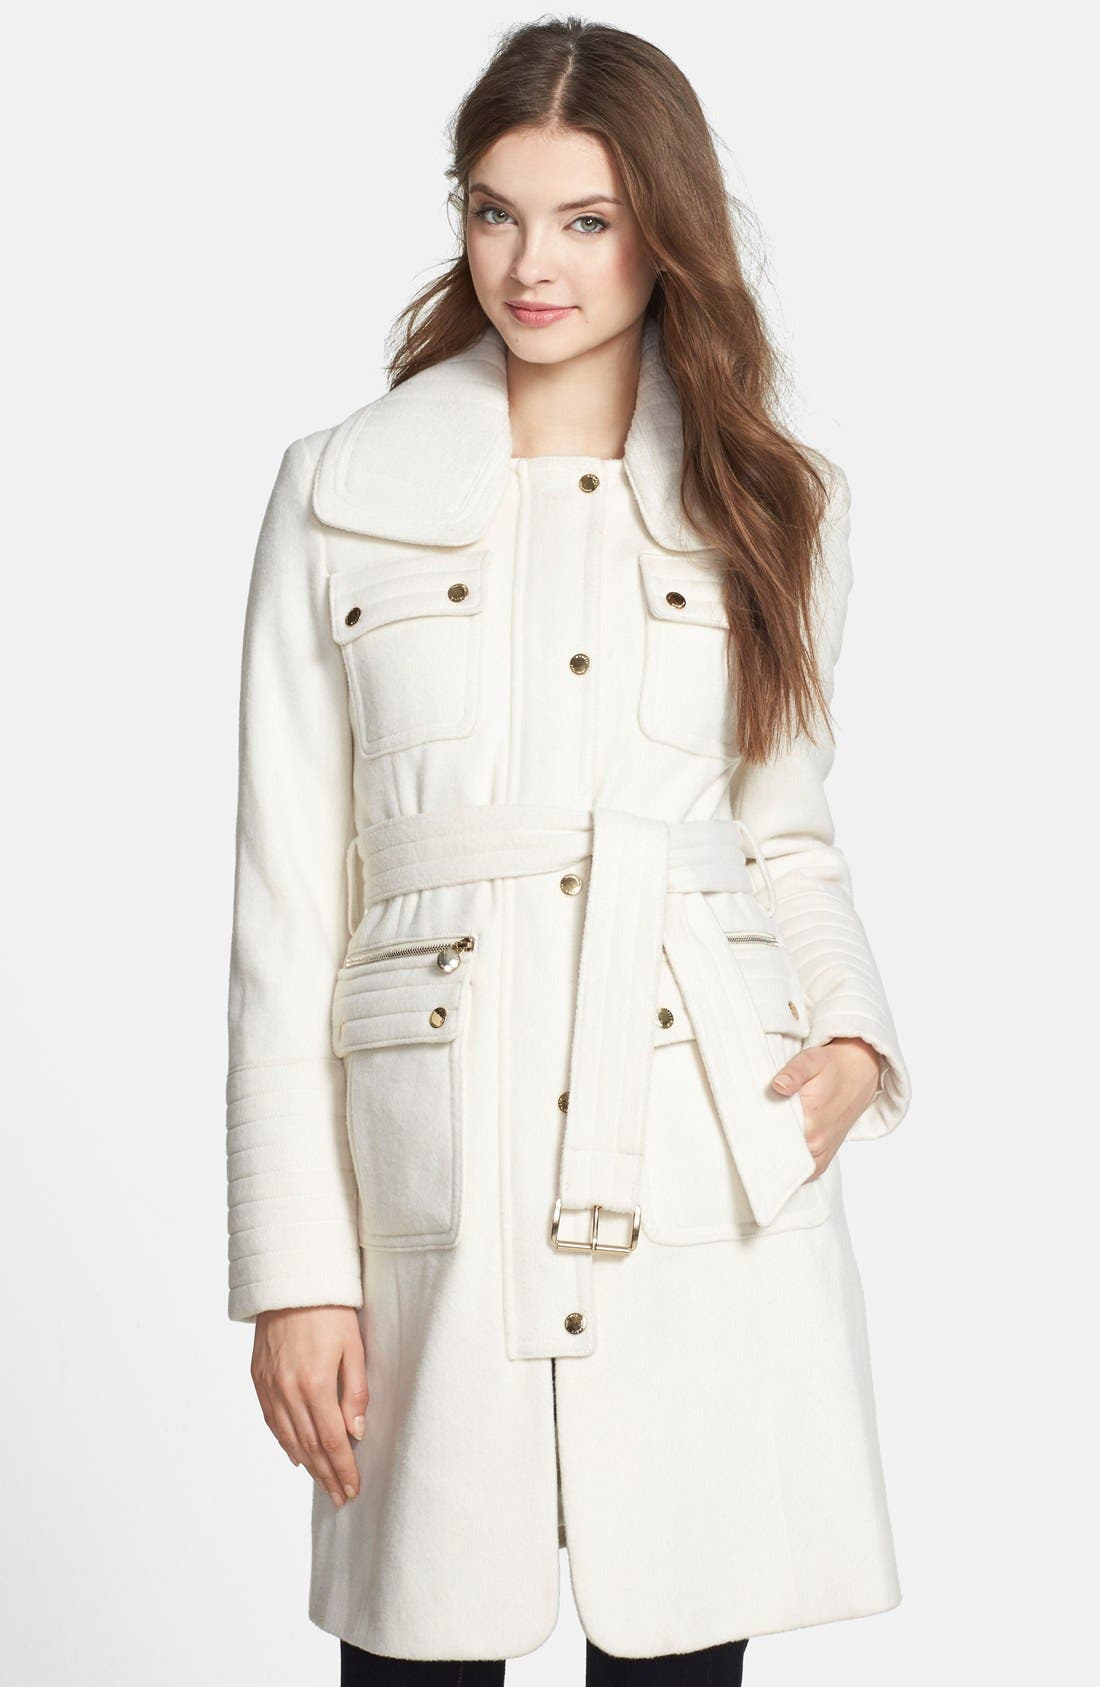 Alternate Image 1 Selected - Laundry by Shelli Segal Belted Wool Blend Trench Coat (Regular & Petite)